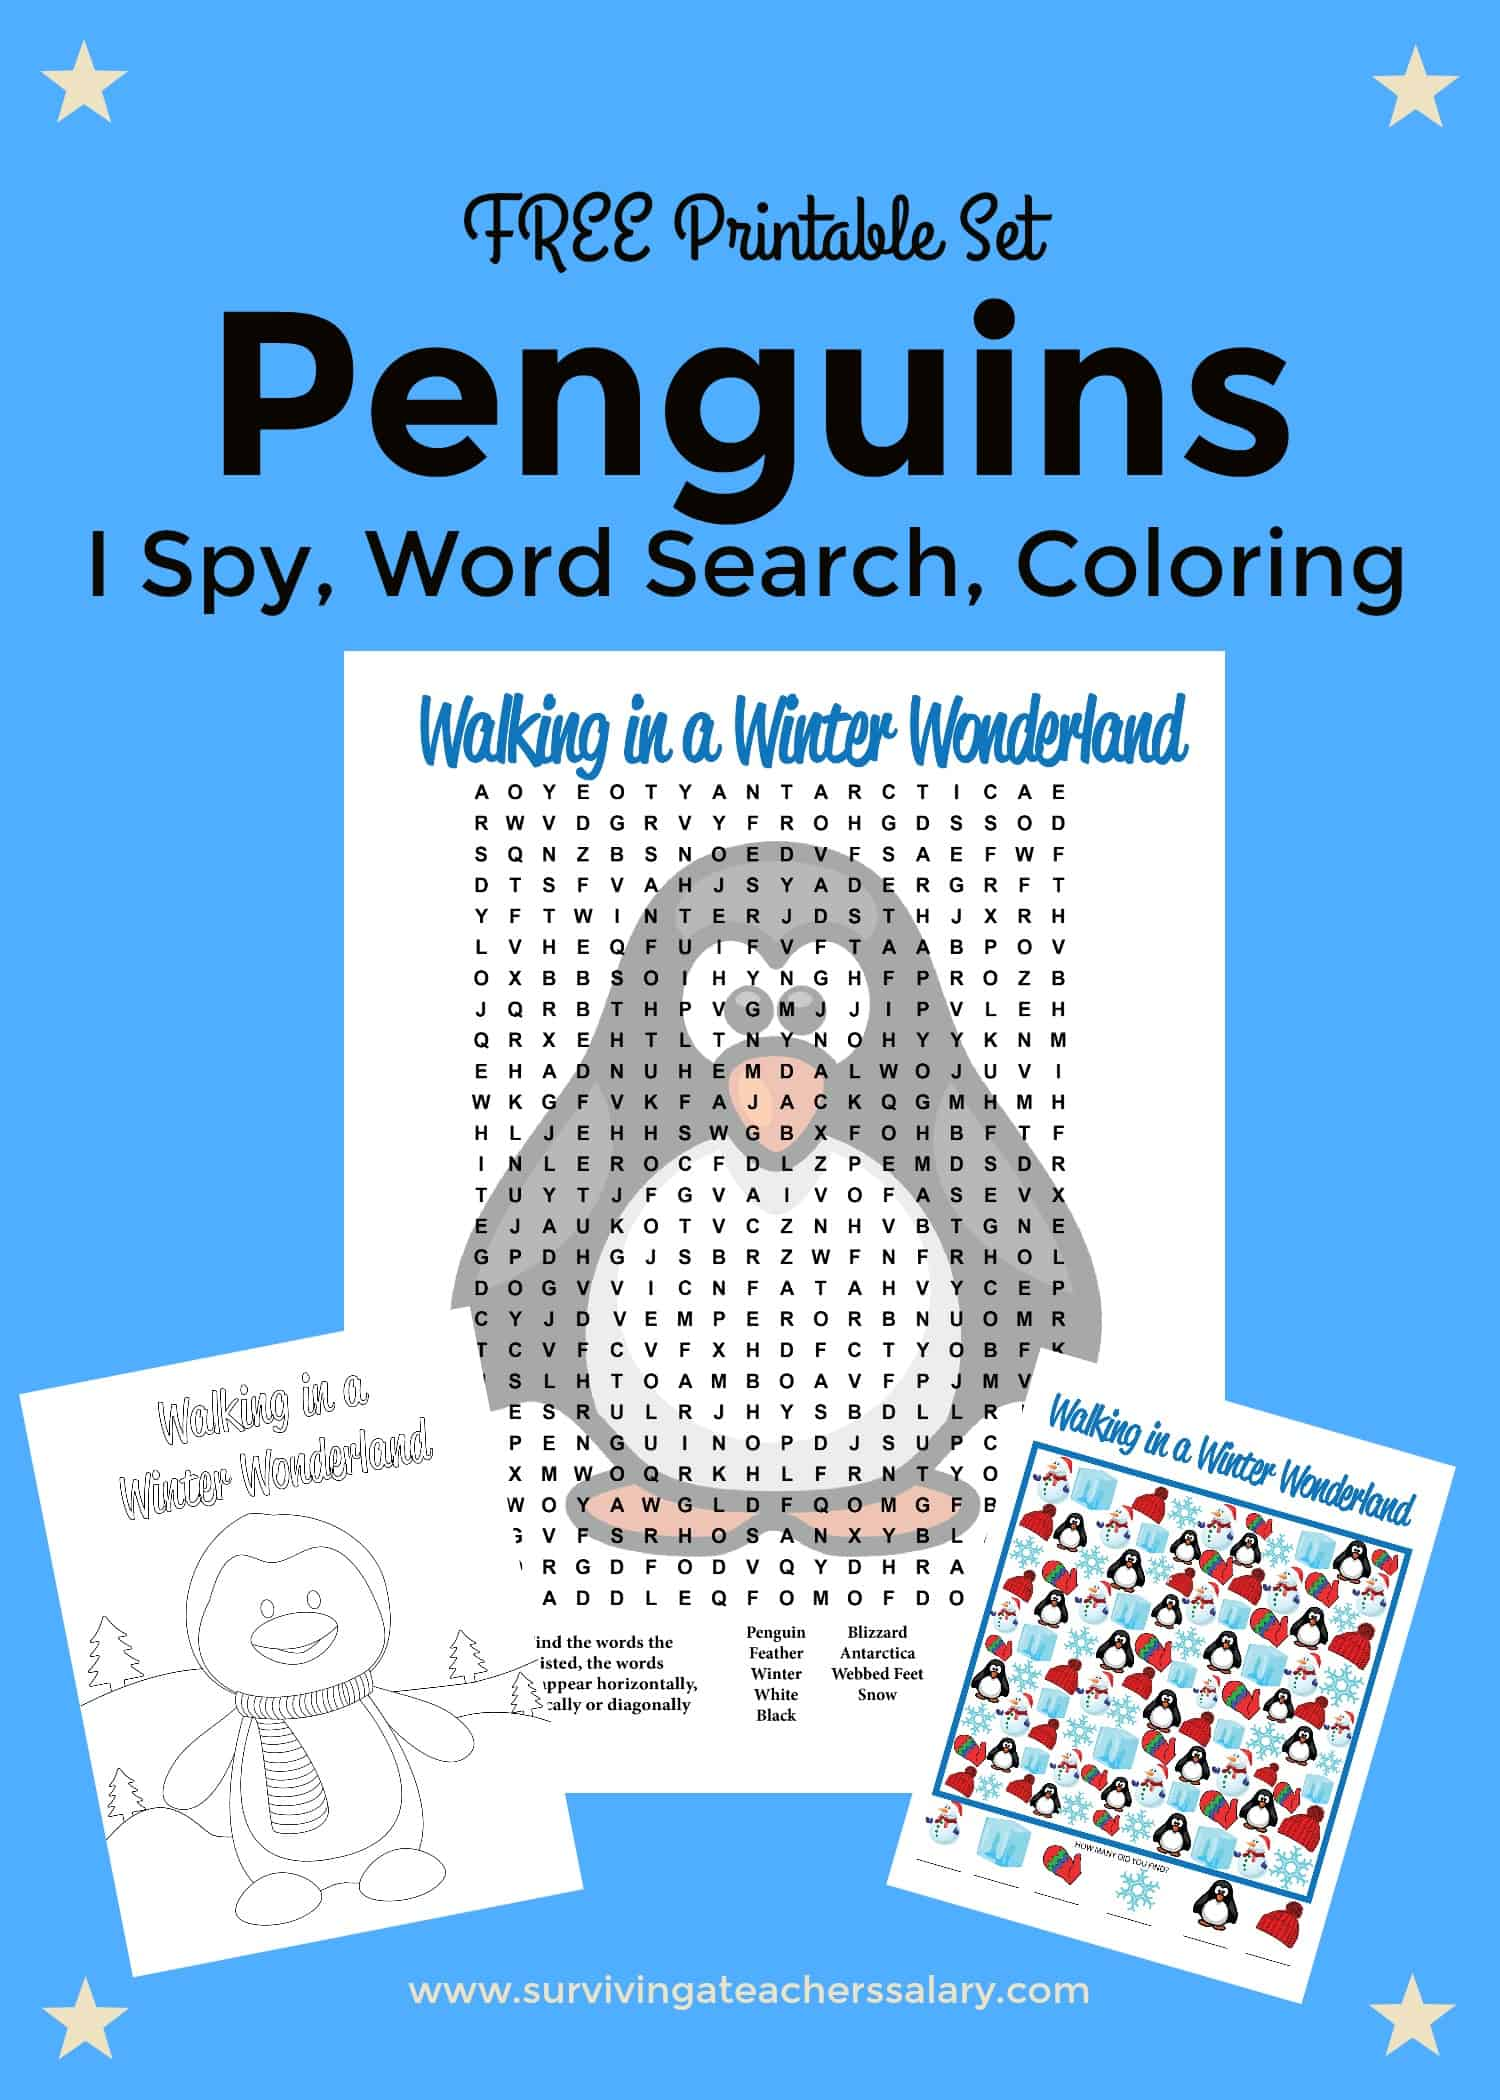 Free Printable Penguins Worksheets Coloring Sheet Word Search I Spy